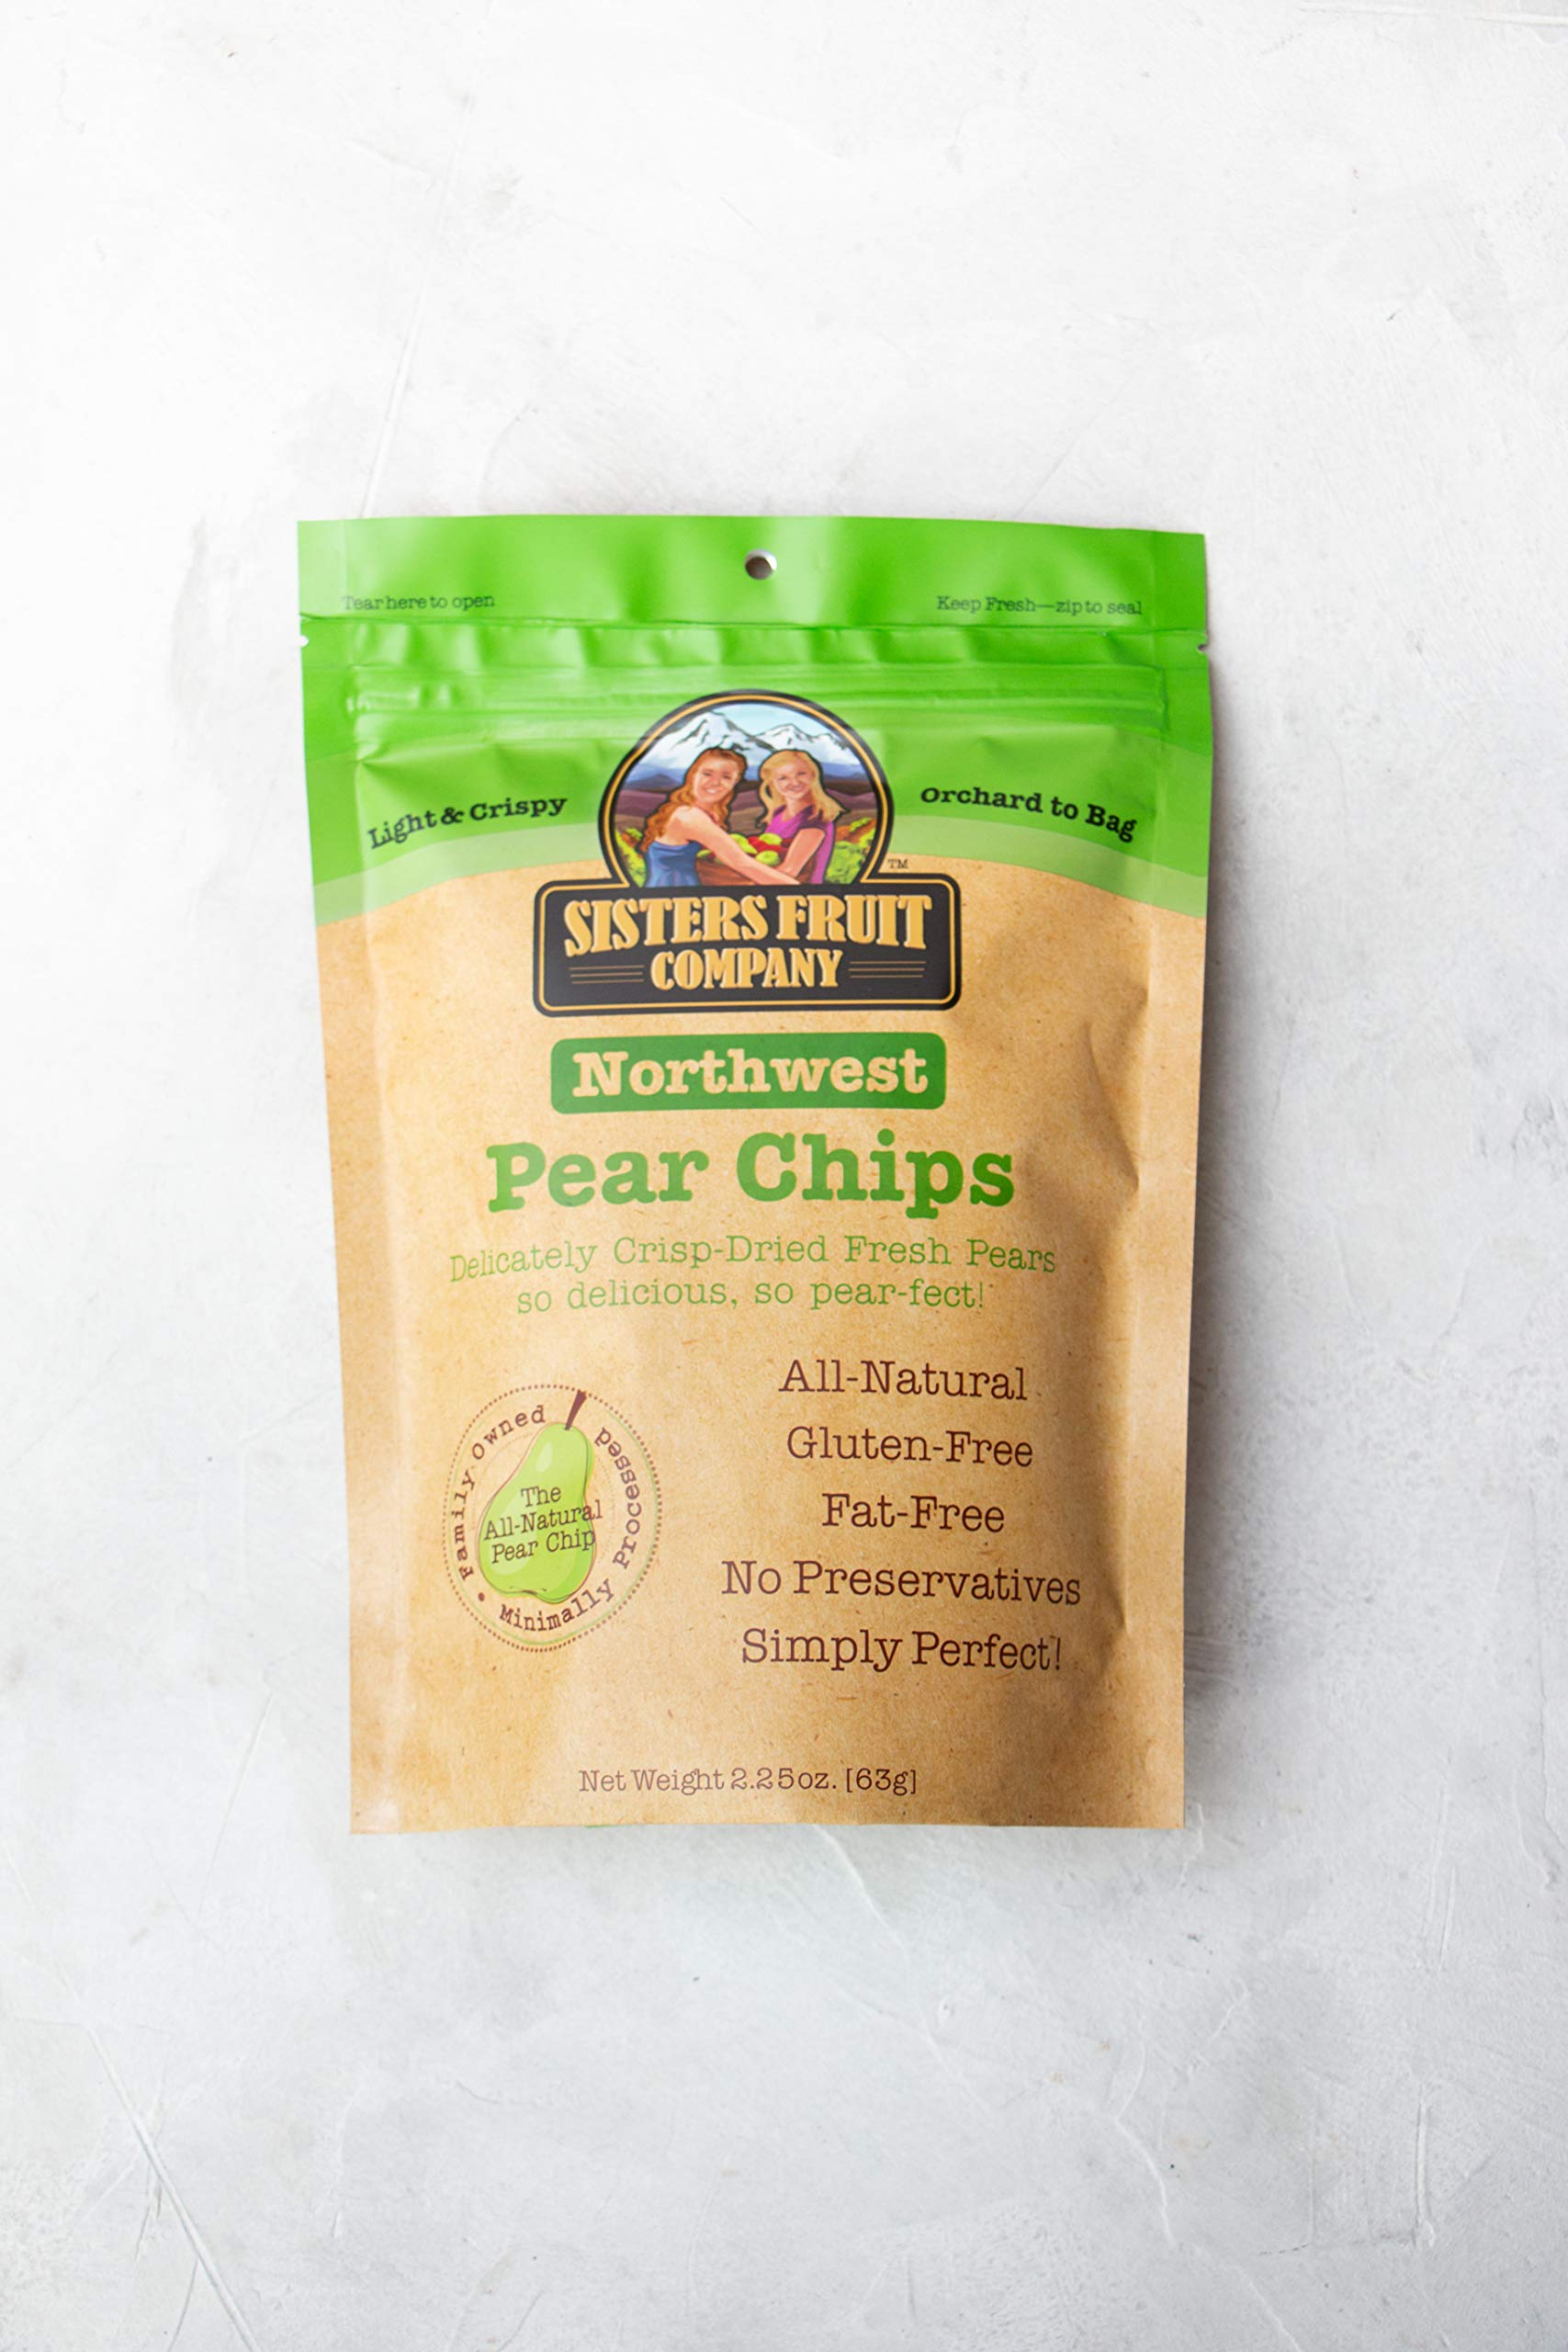 Sisters Fruit Company, Northwest Pear Chips, All-Natural, No Preservatives, Fat-Free (SIX 2.25 OZ. Bags) by Sisters Fruit Company